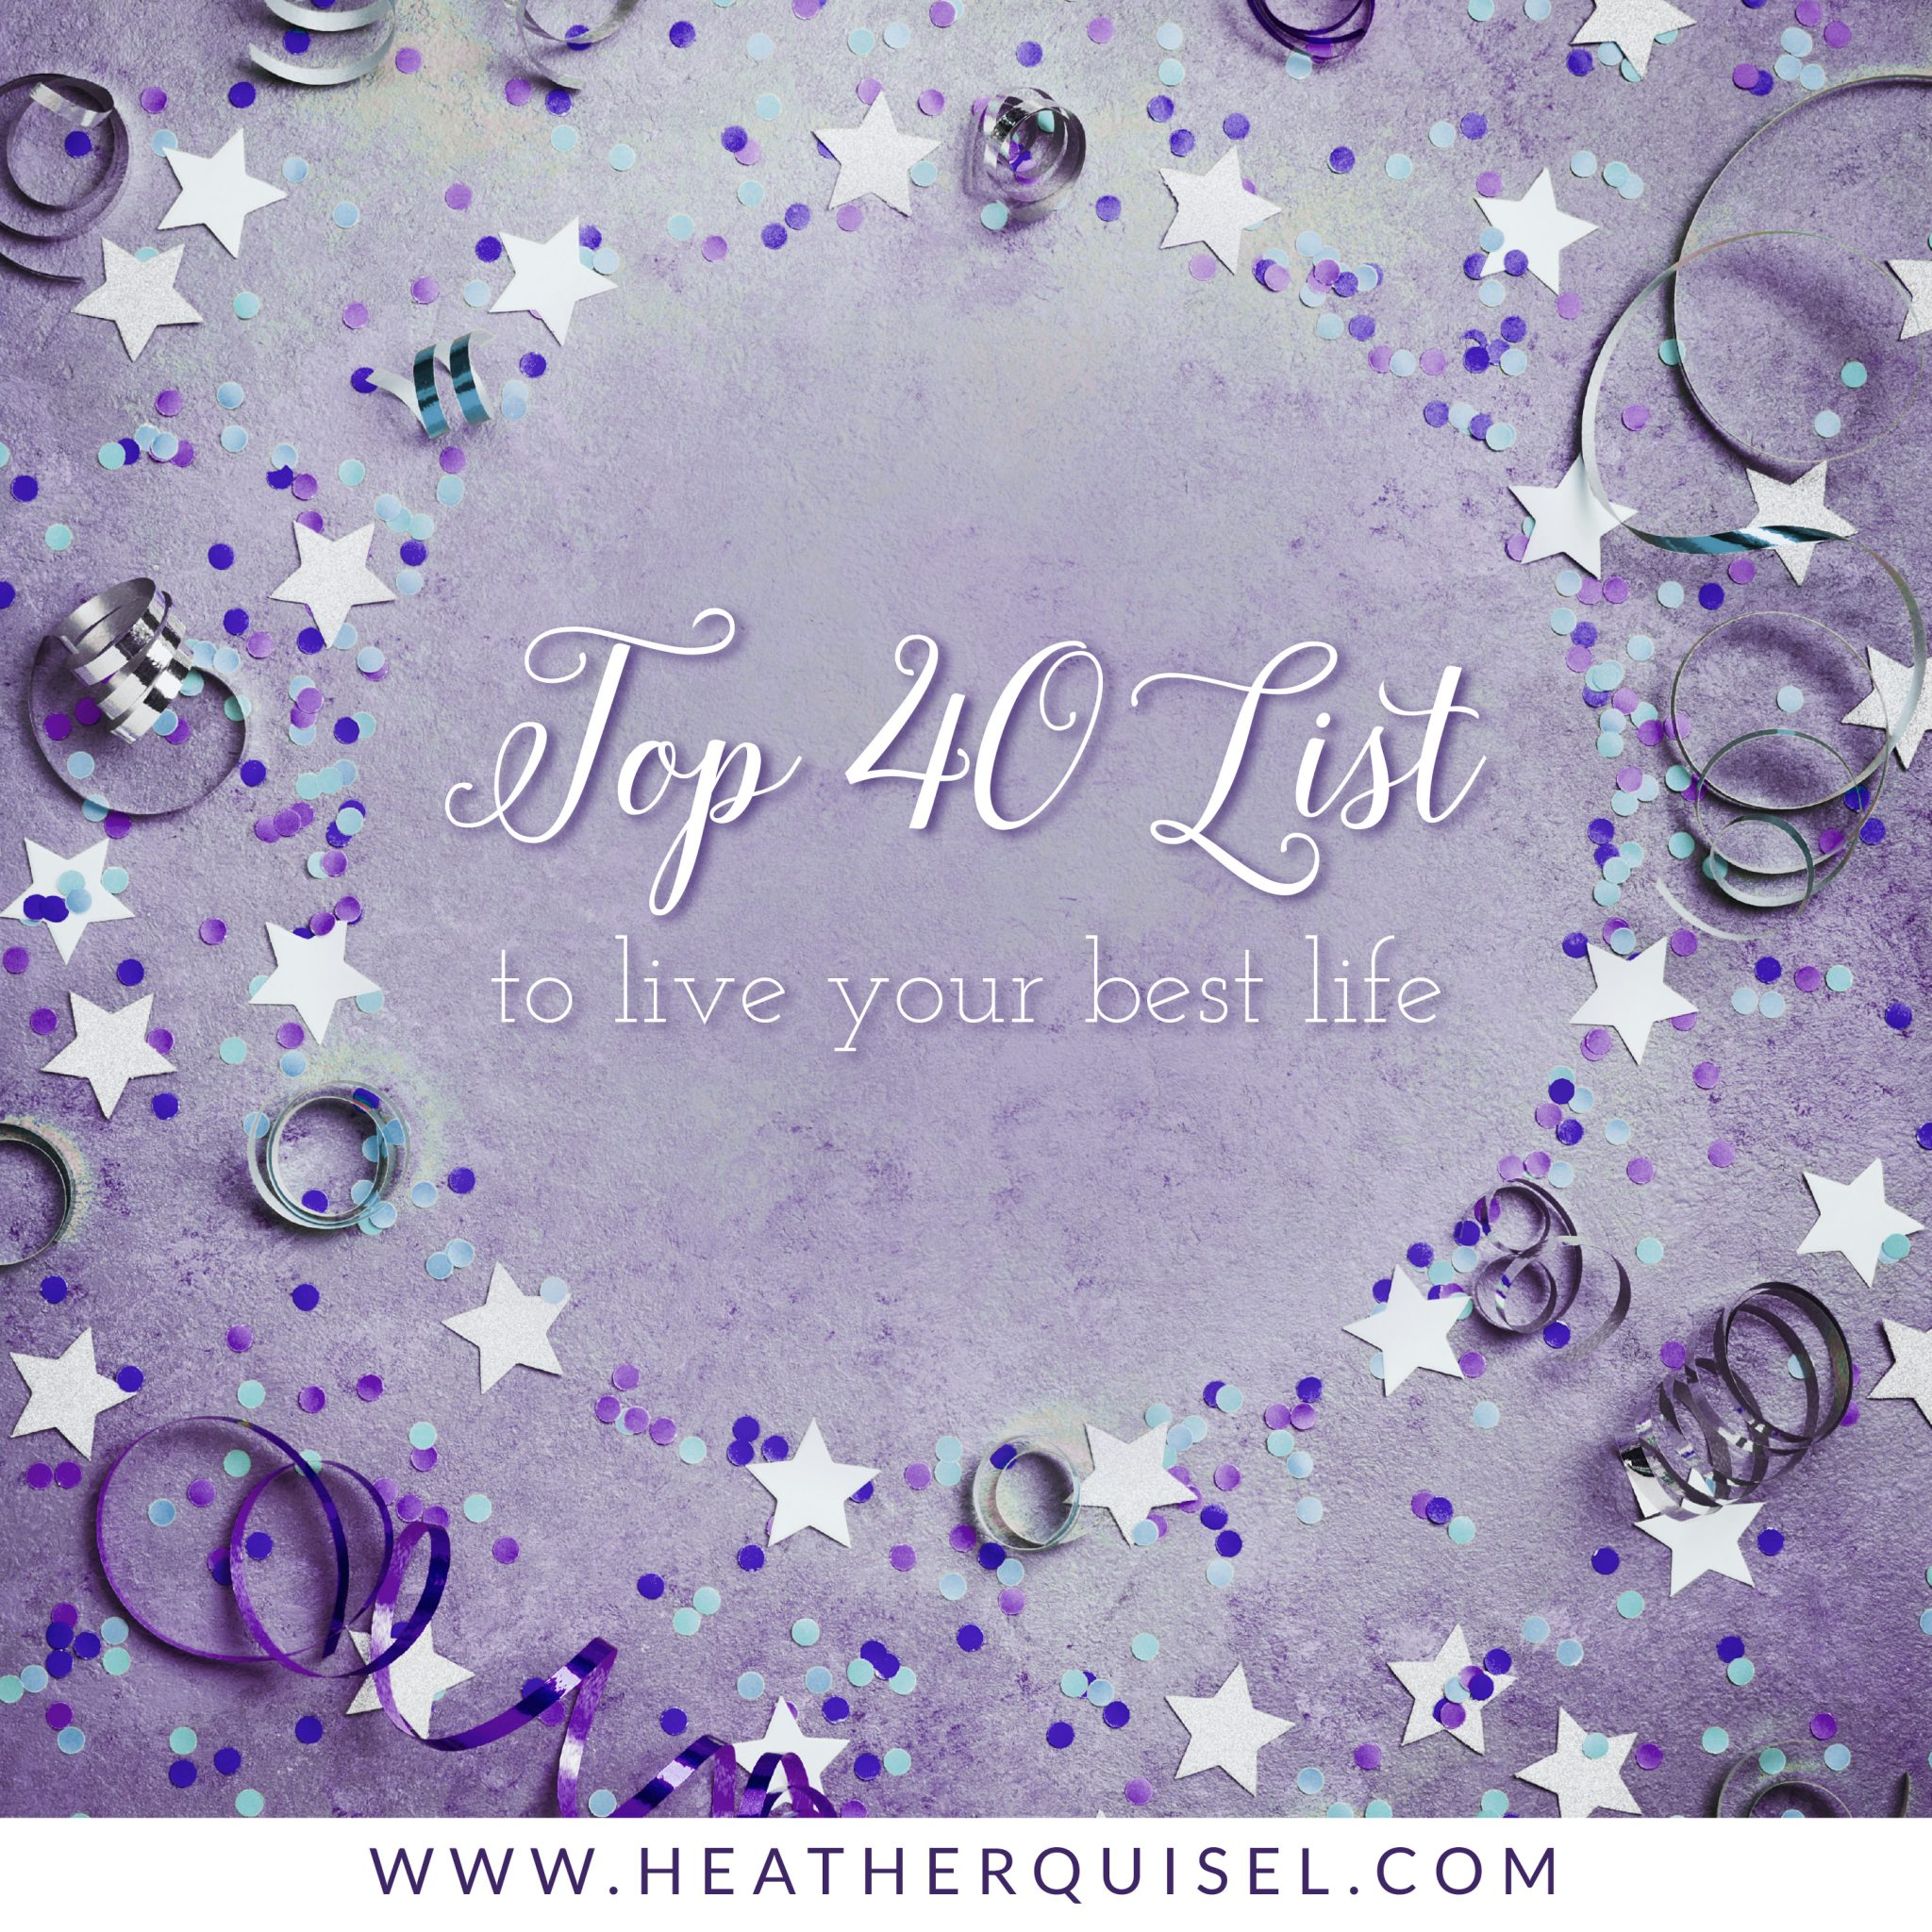 Top 40 List to Live Your Best Life